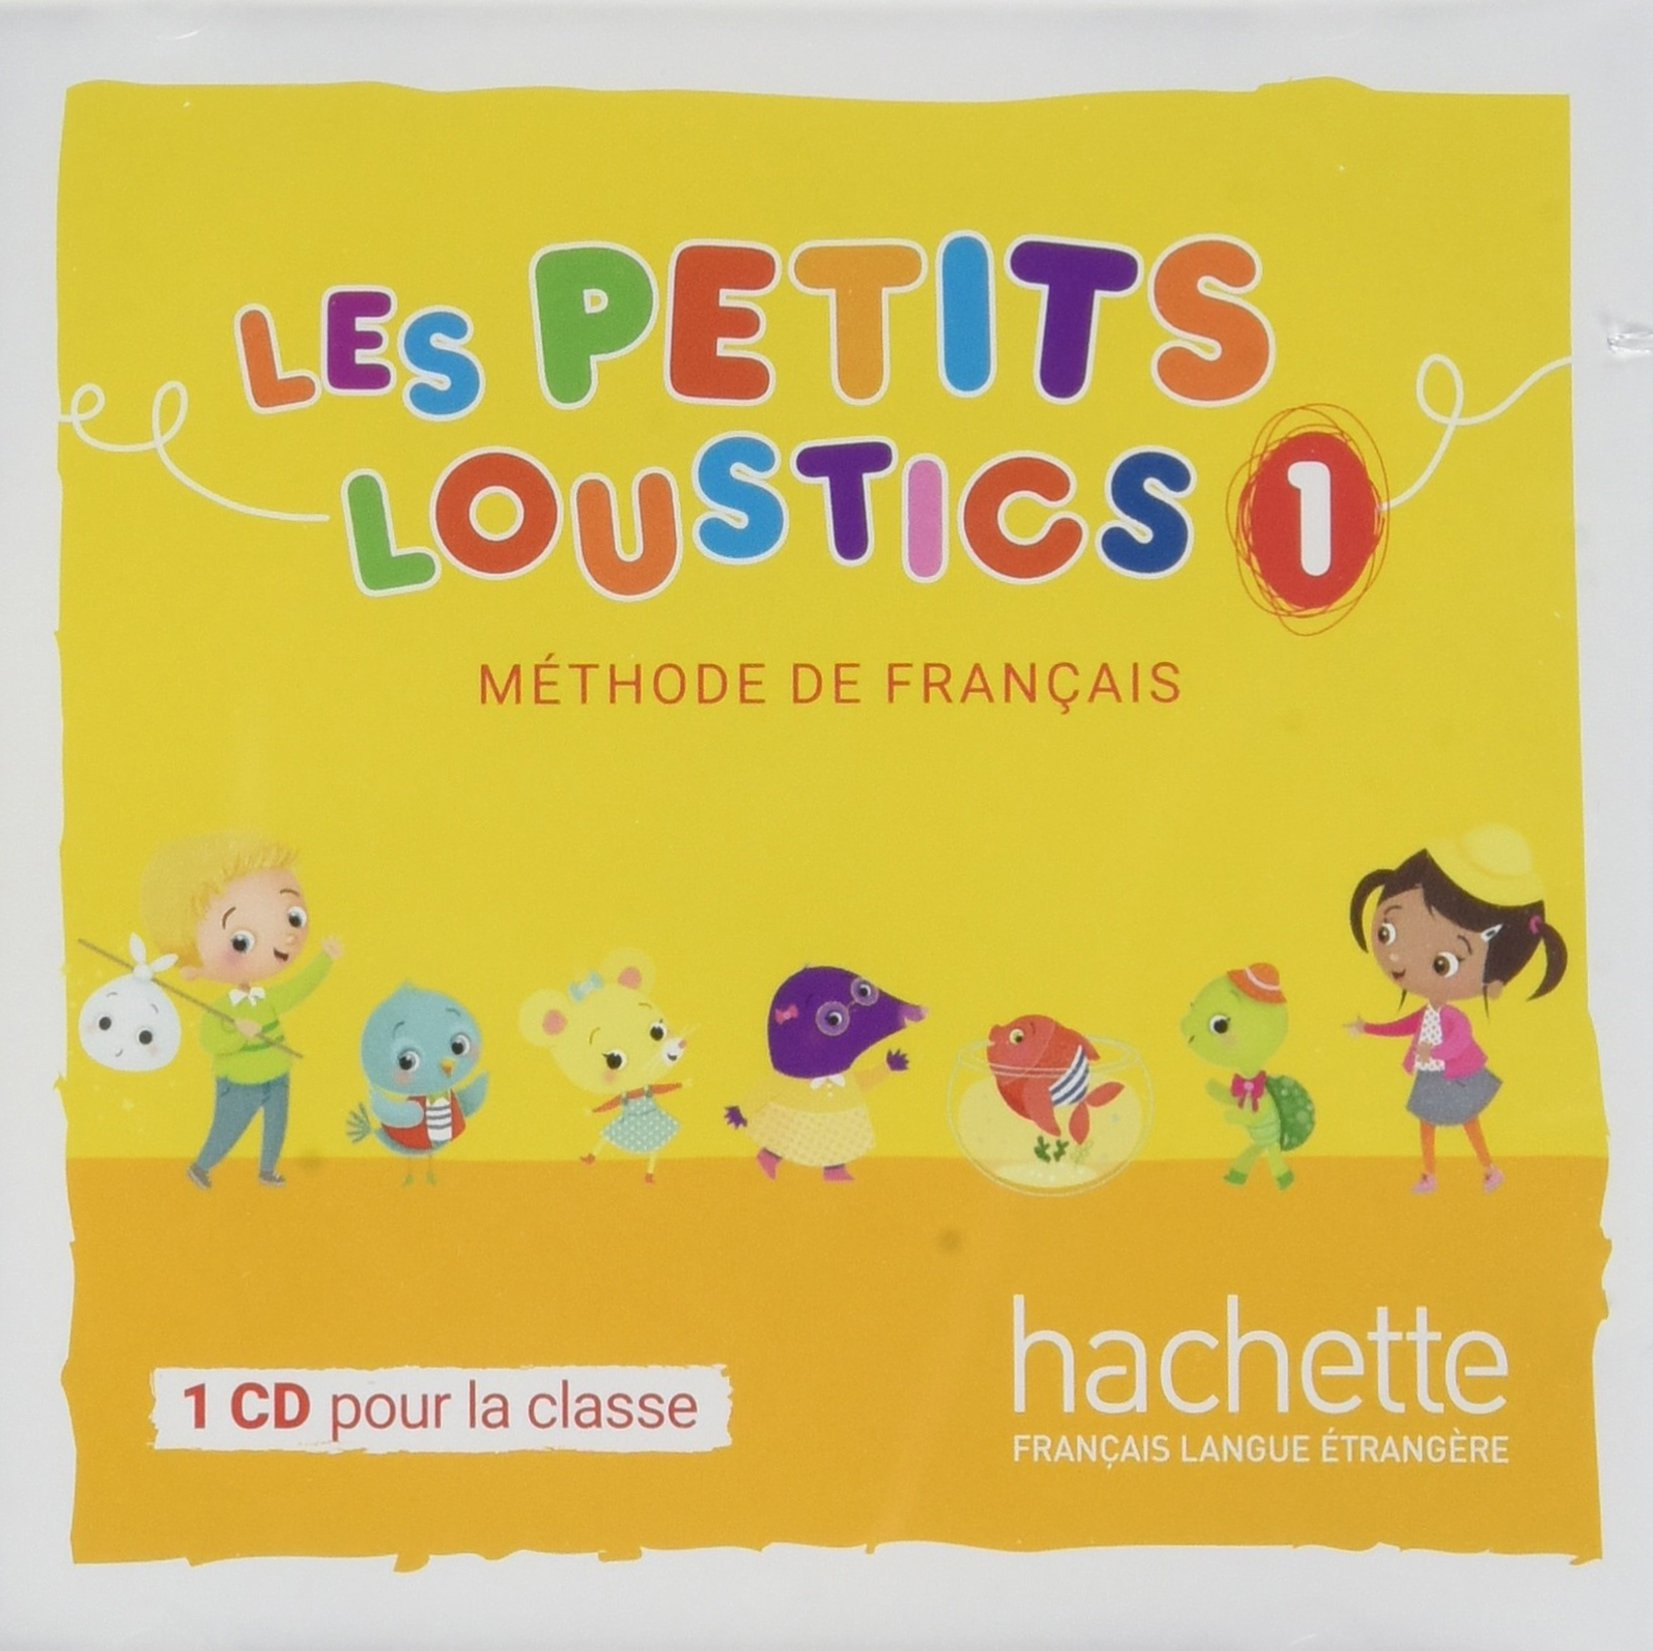 Les Petits Loustics 1 CD audio classe (MP3)